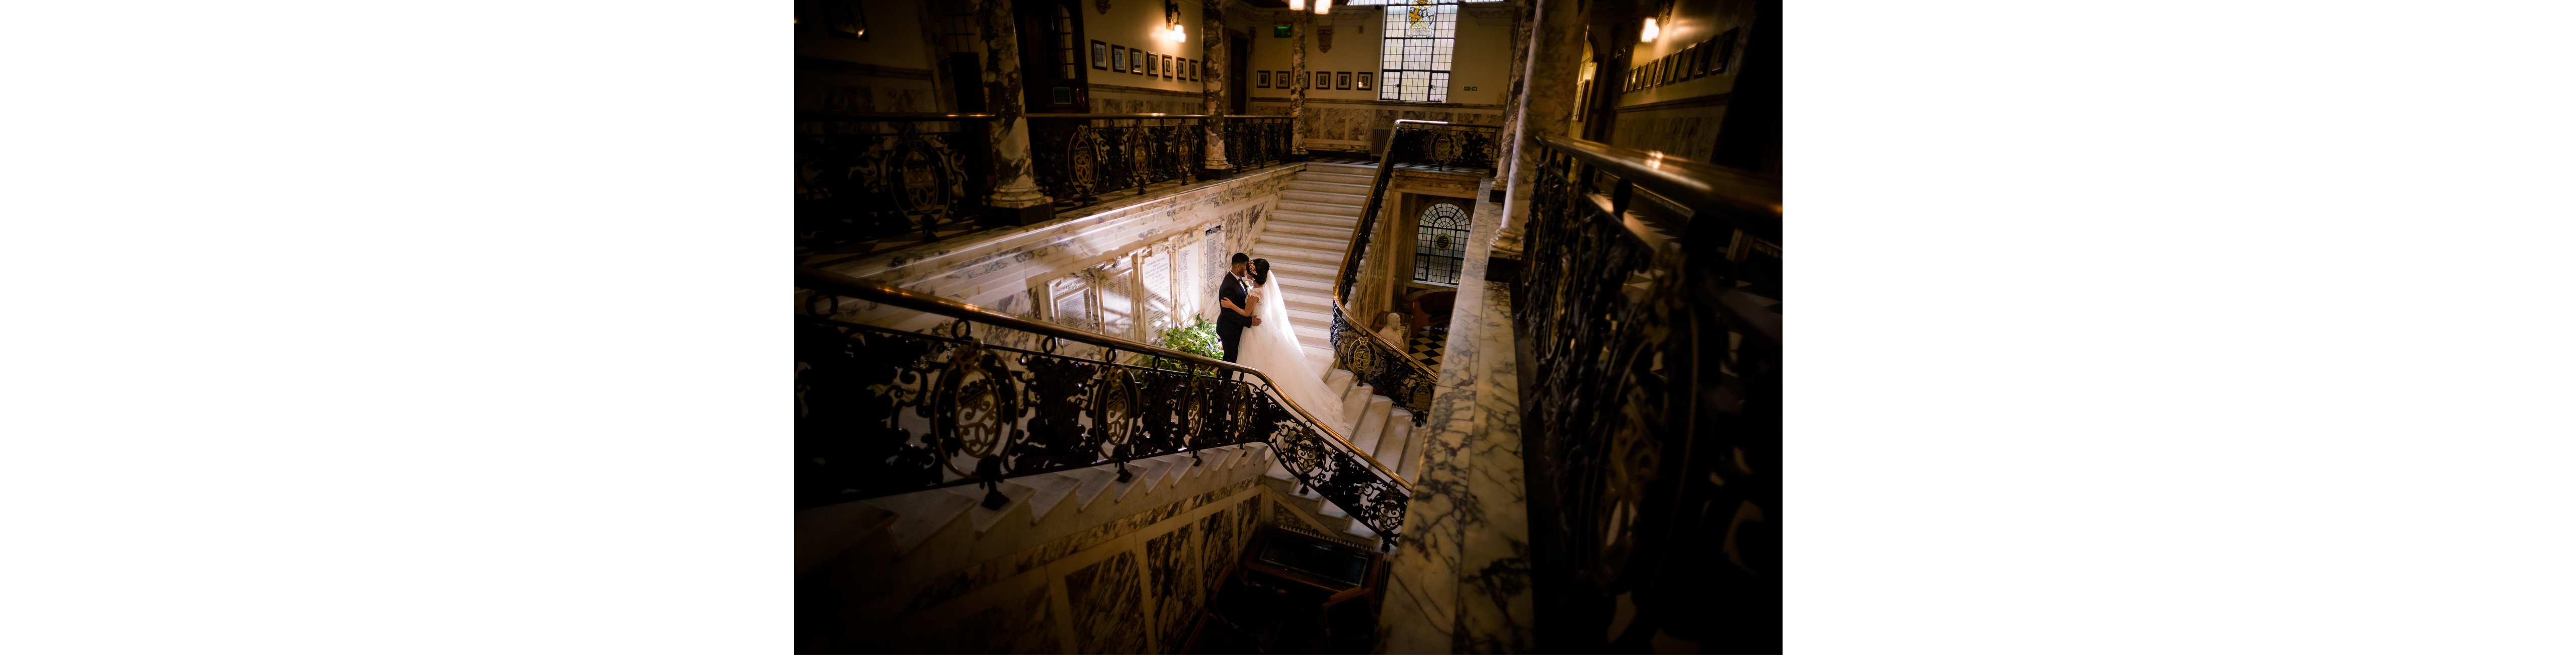 Stockport-Town-Hall-Asian-Wedding-Photography